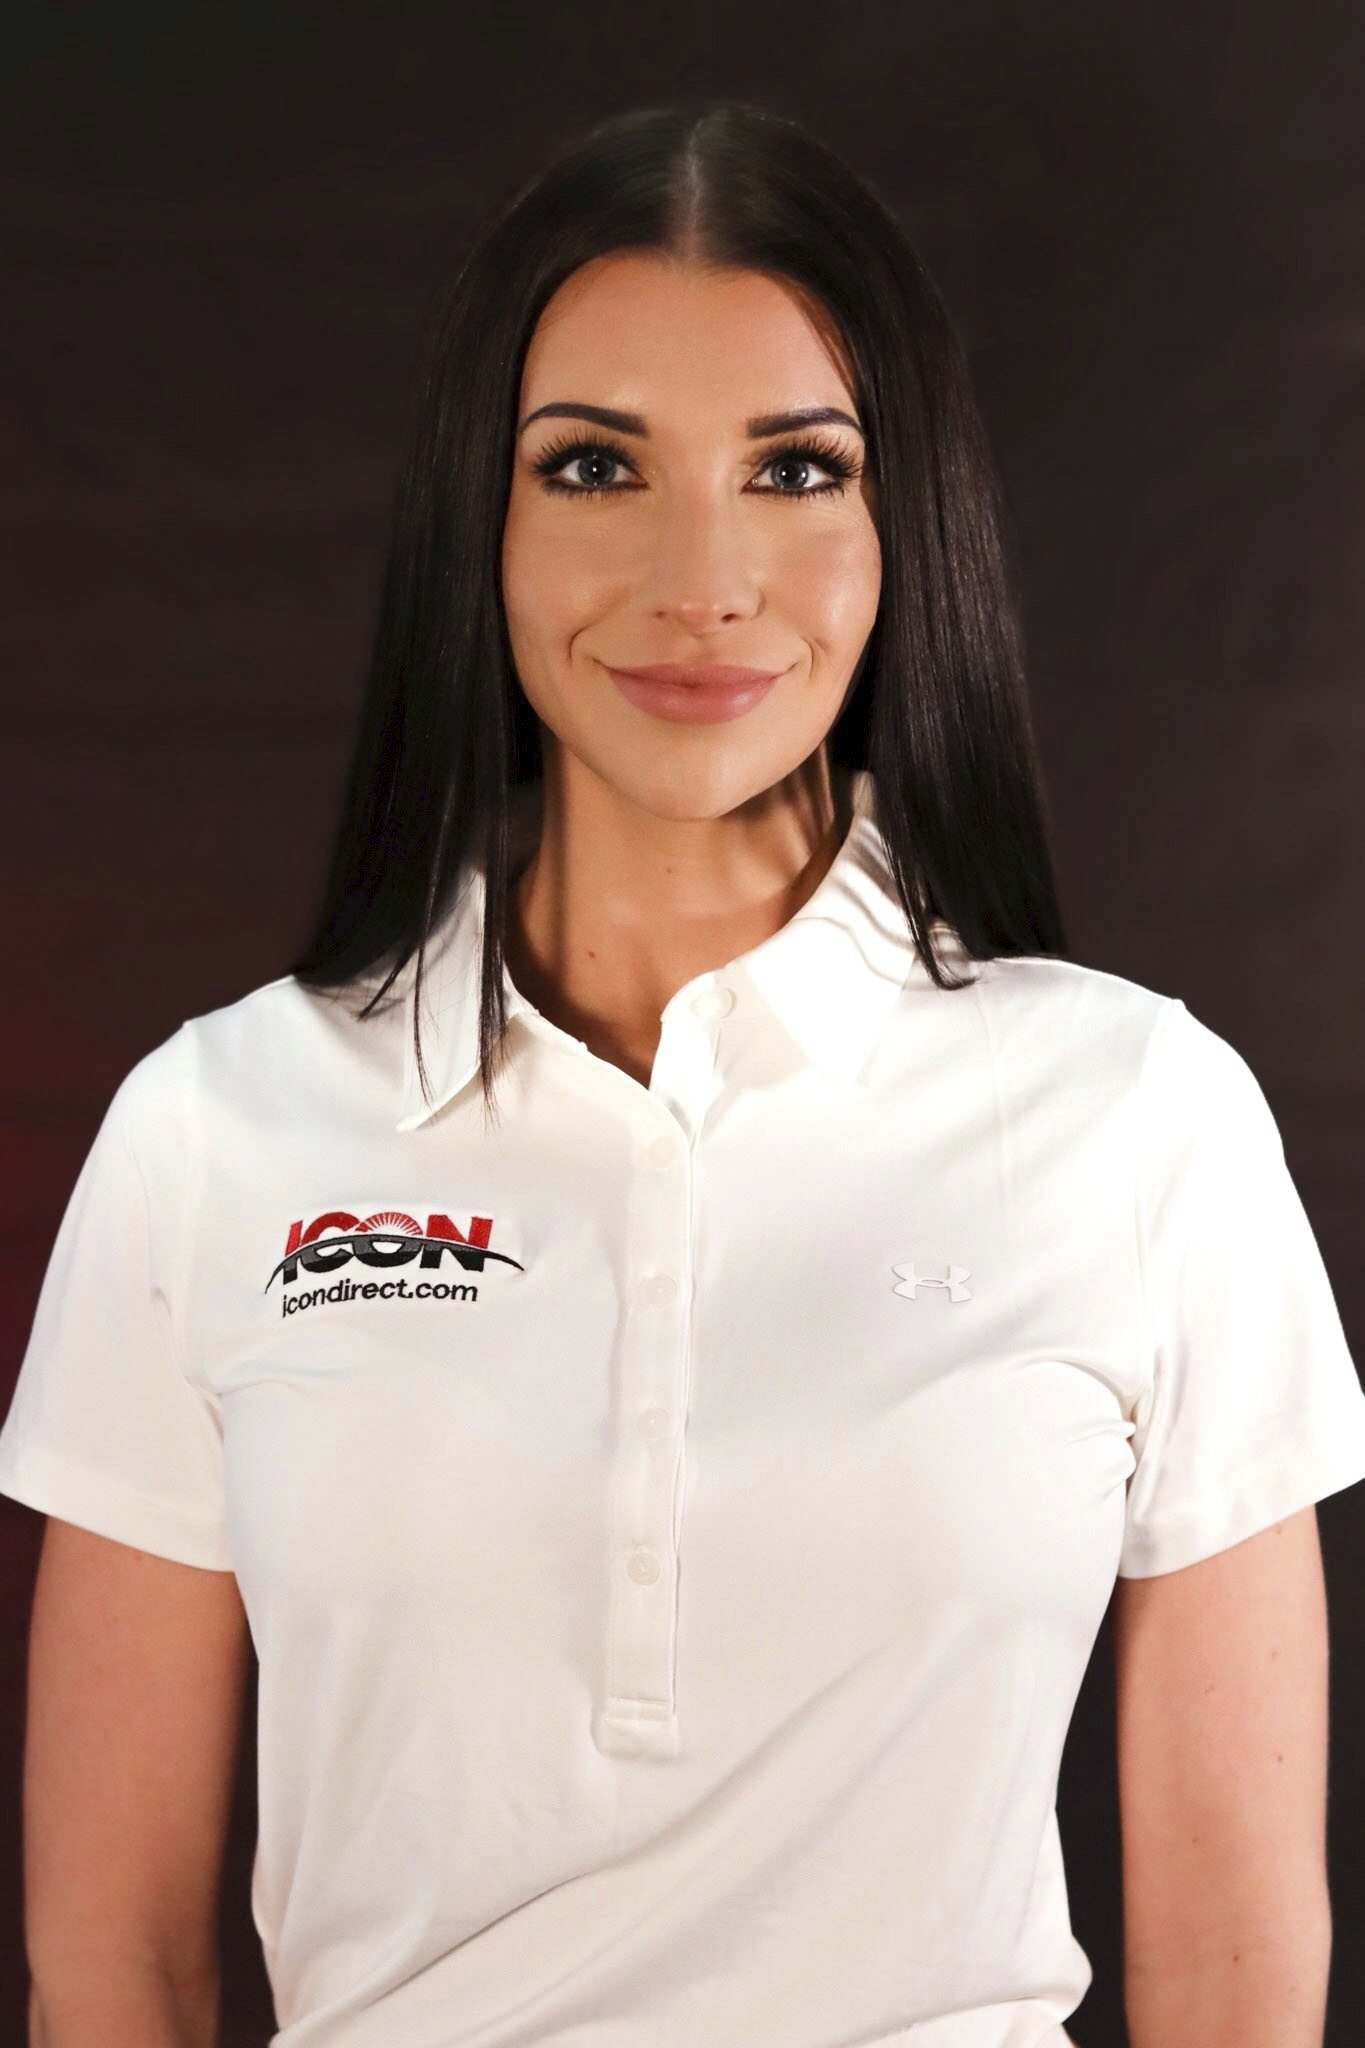 Balcaen announced she will be racing full time for Bill McAnally Racing (BMR) this season in BMR Drivers Academy, a new NASCAR development program.